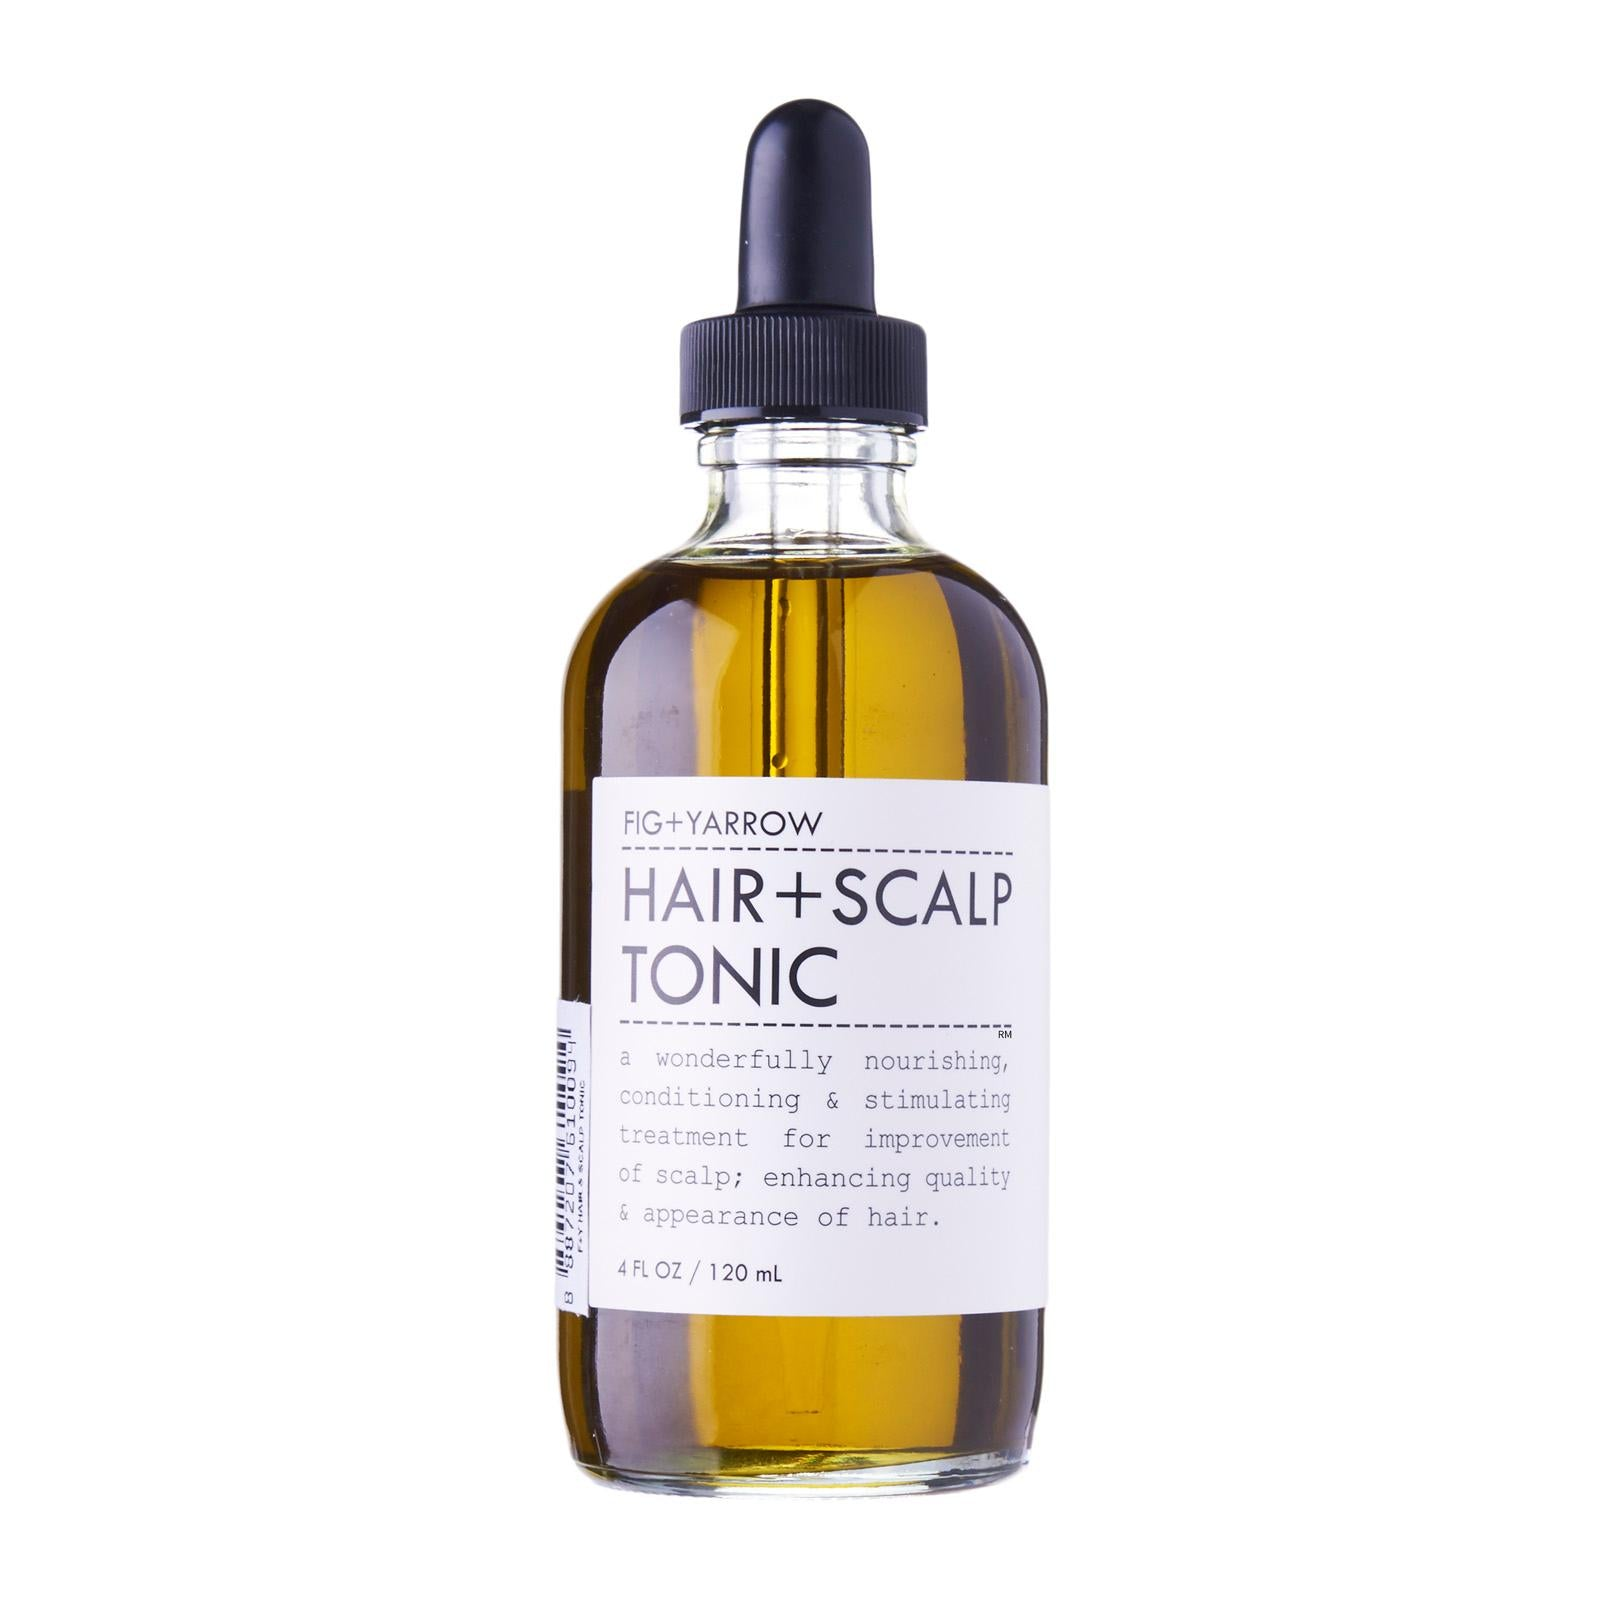 Hair Fig+Yarrow Hair+Scalp Tonic